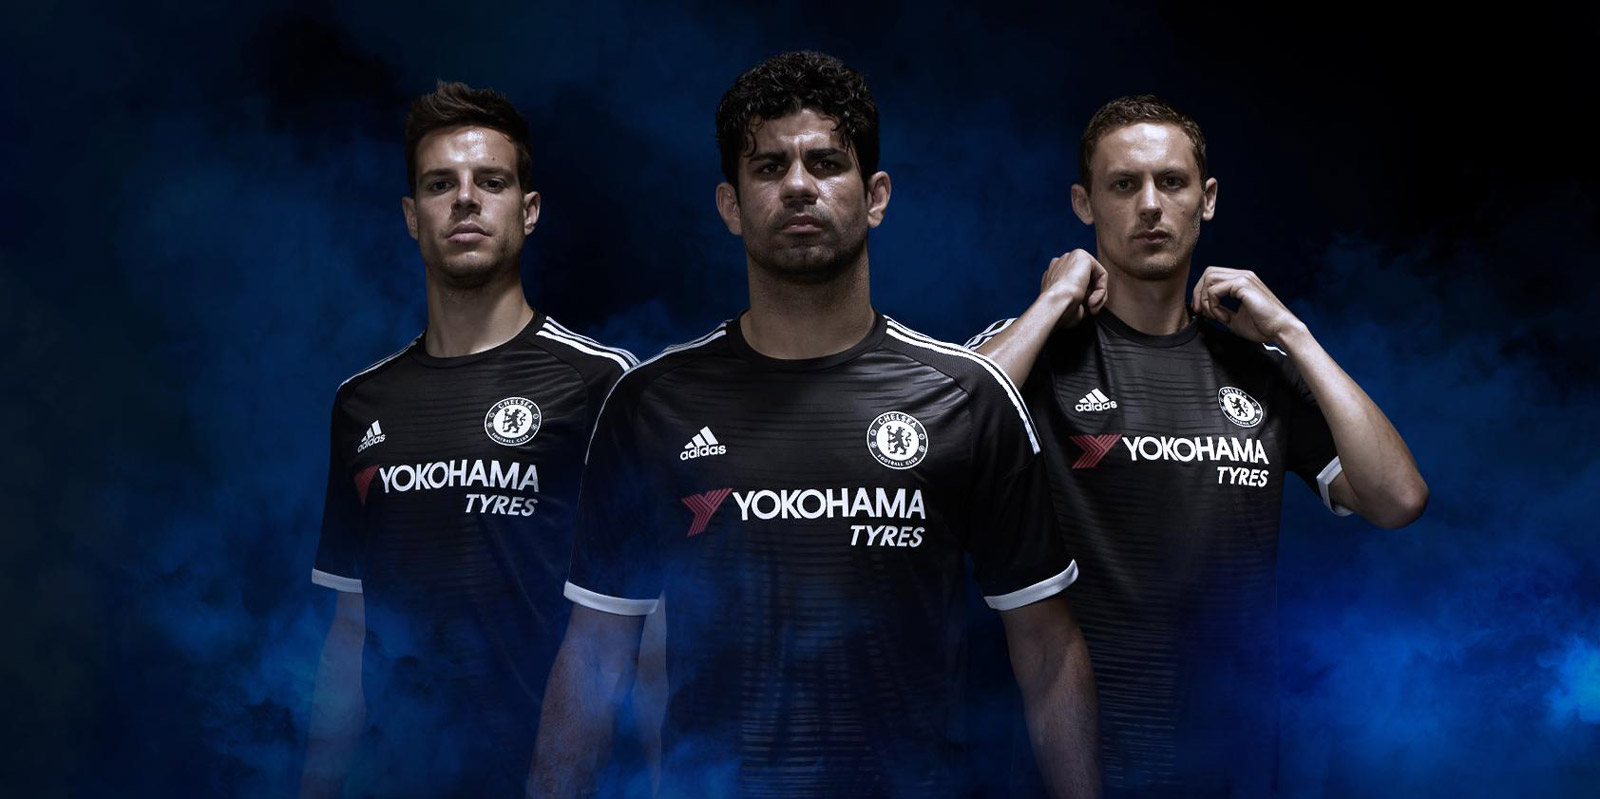 92980c305f1 Chelsea the black Chelsea 15-16 Third Kit Jersey / Have a Nice Day !  #nicedaysports August 23 2015, 0 Comments